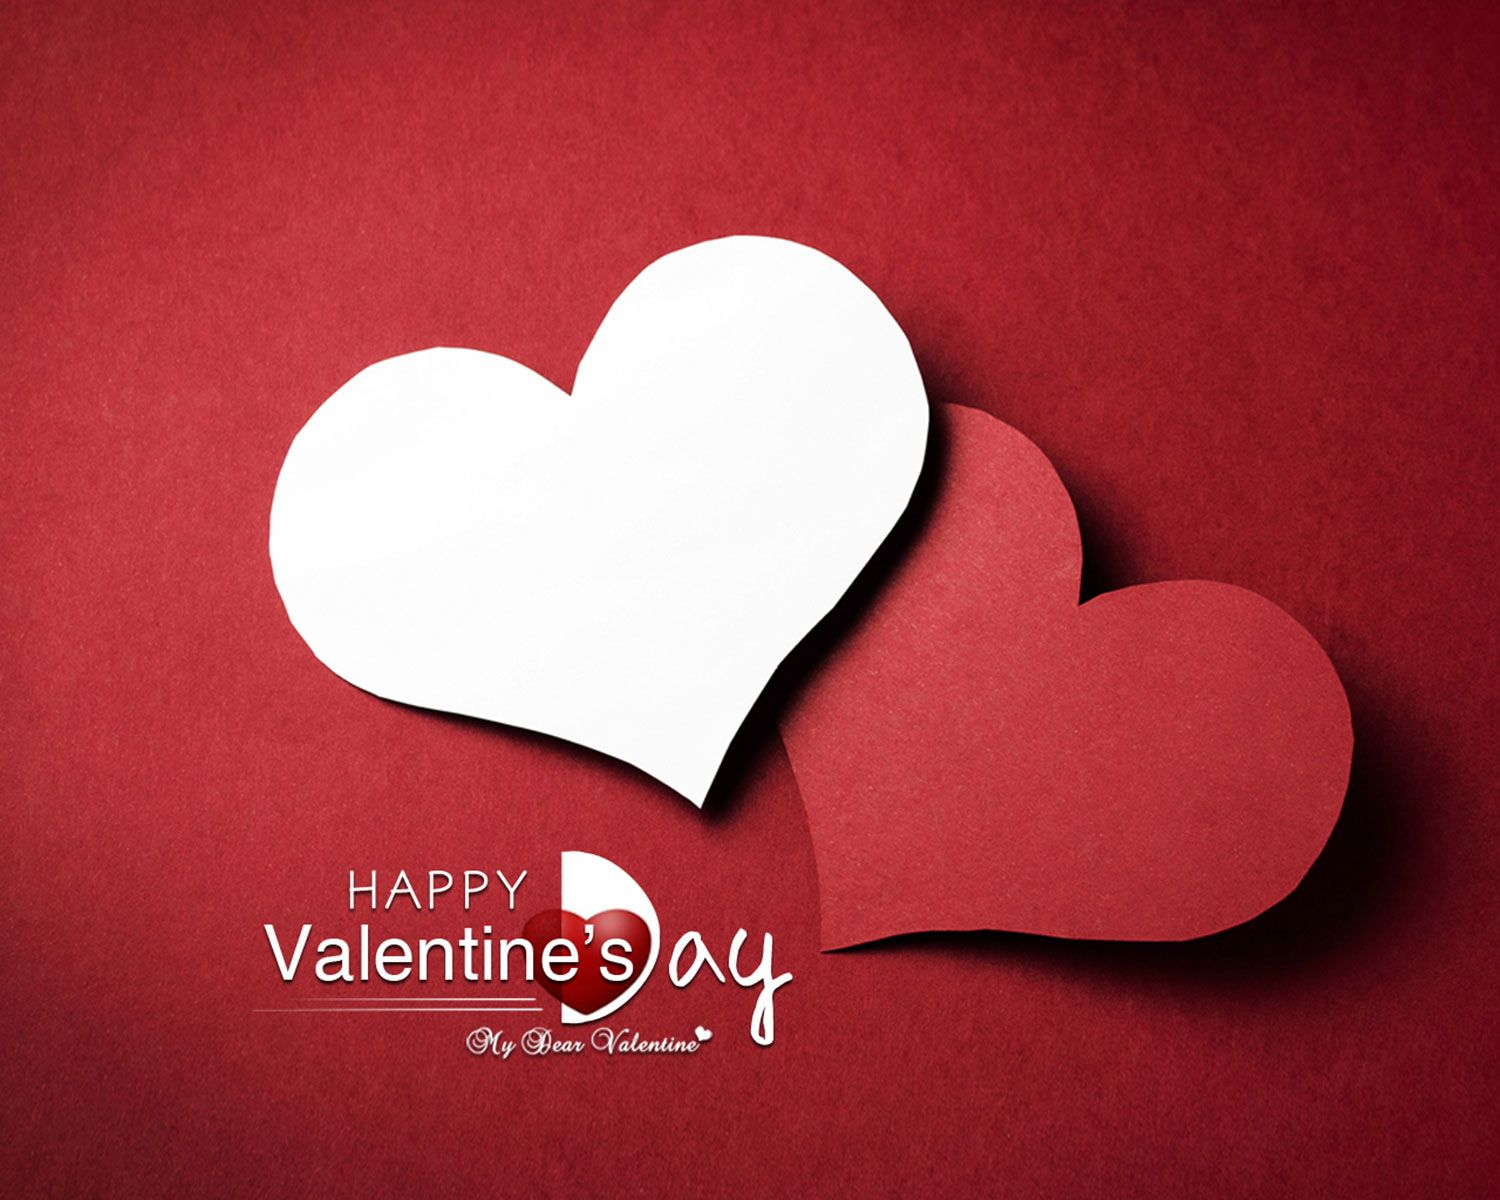 1500x1200 35 Happy Valentine's Day HD Wallpapers, Backgrounds & Pictures